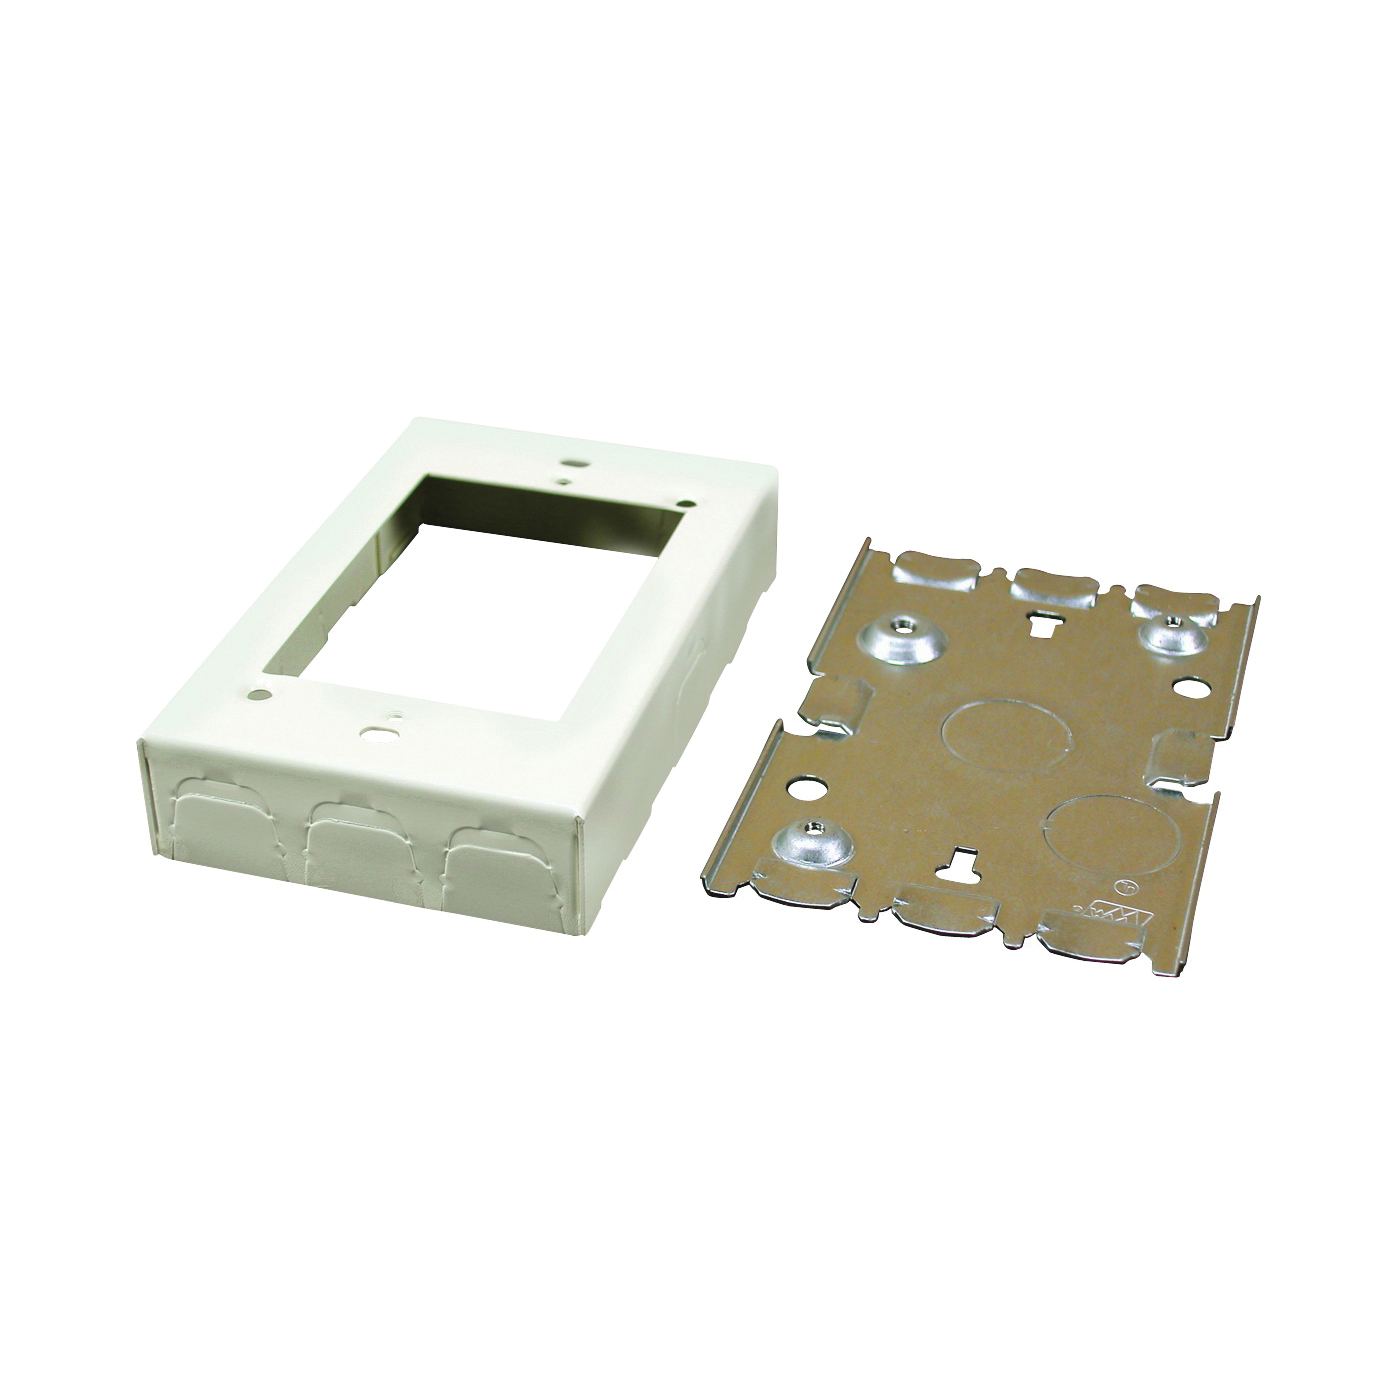 Picture of Legrand Wiremold B2 Outlet Box, Ivory